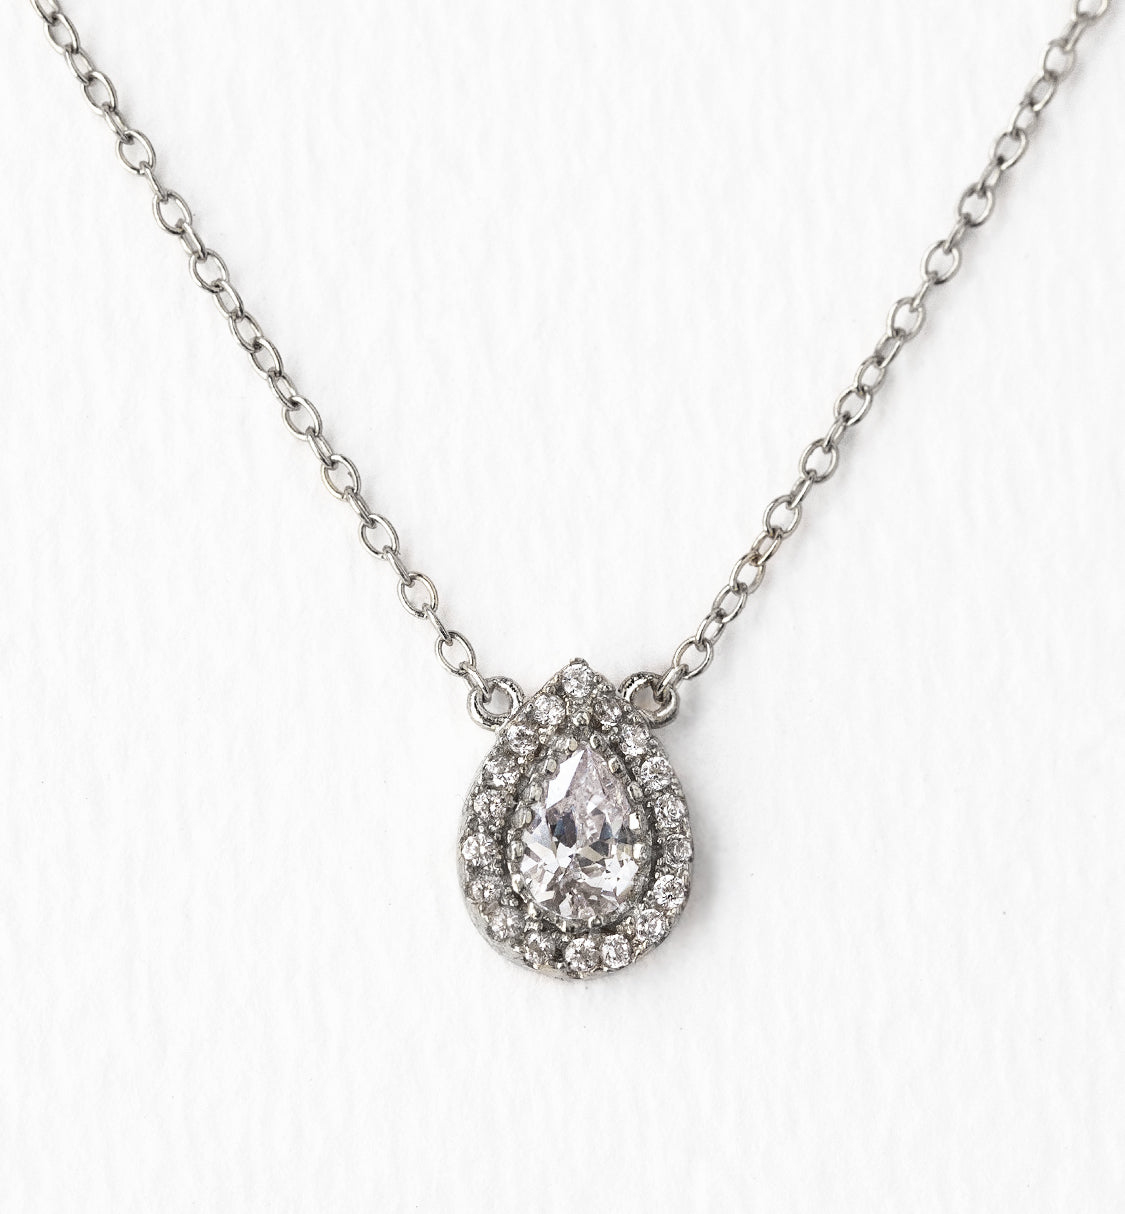 Margaux Petite Teardrop Necklace - Amy O. Bridal